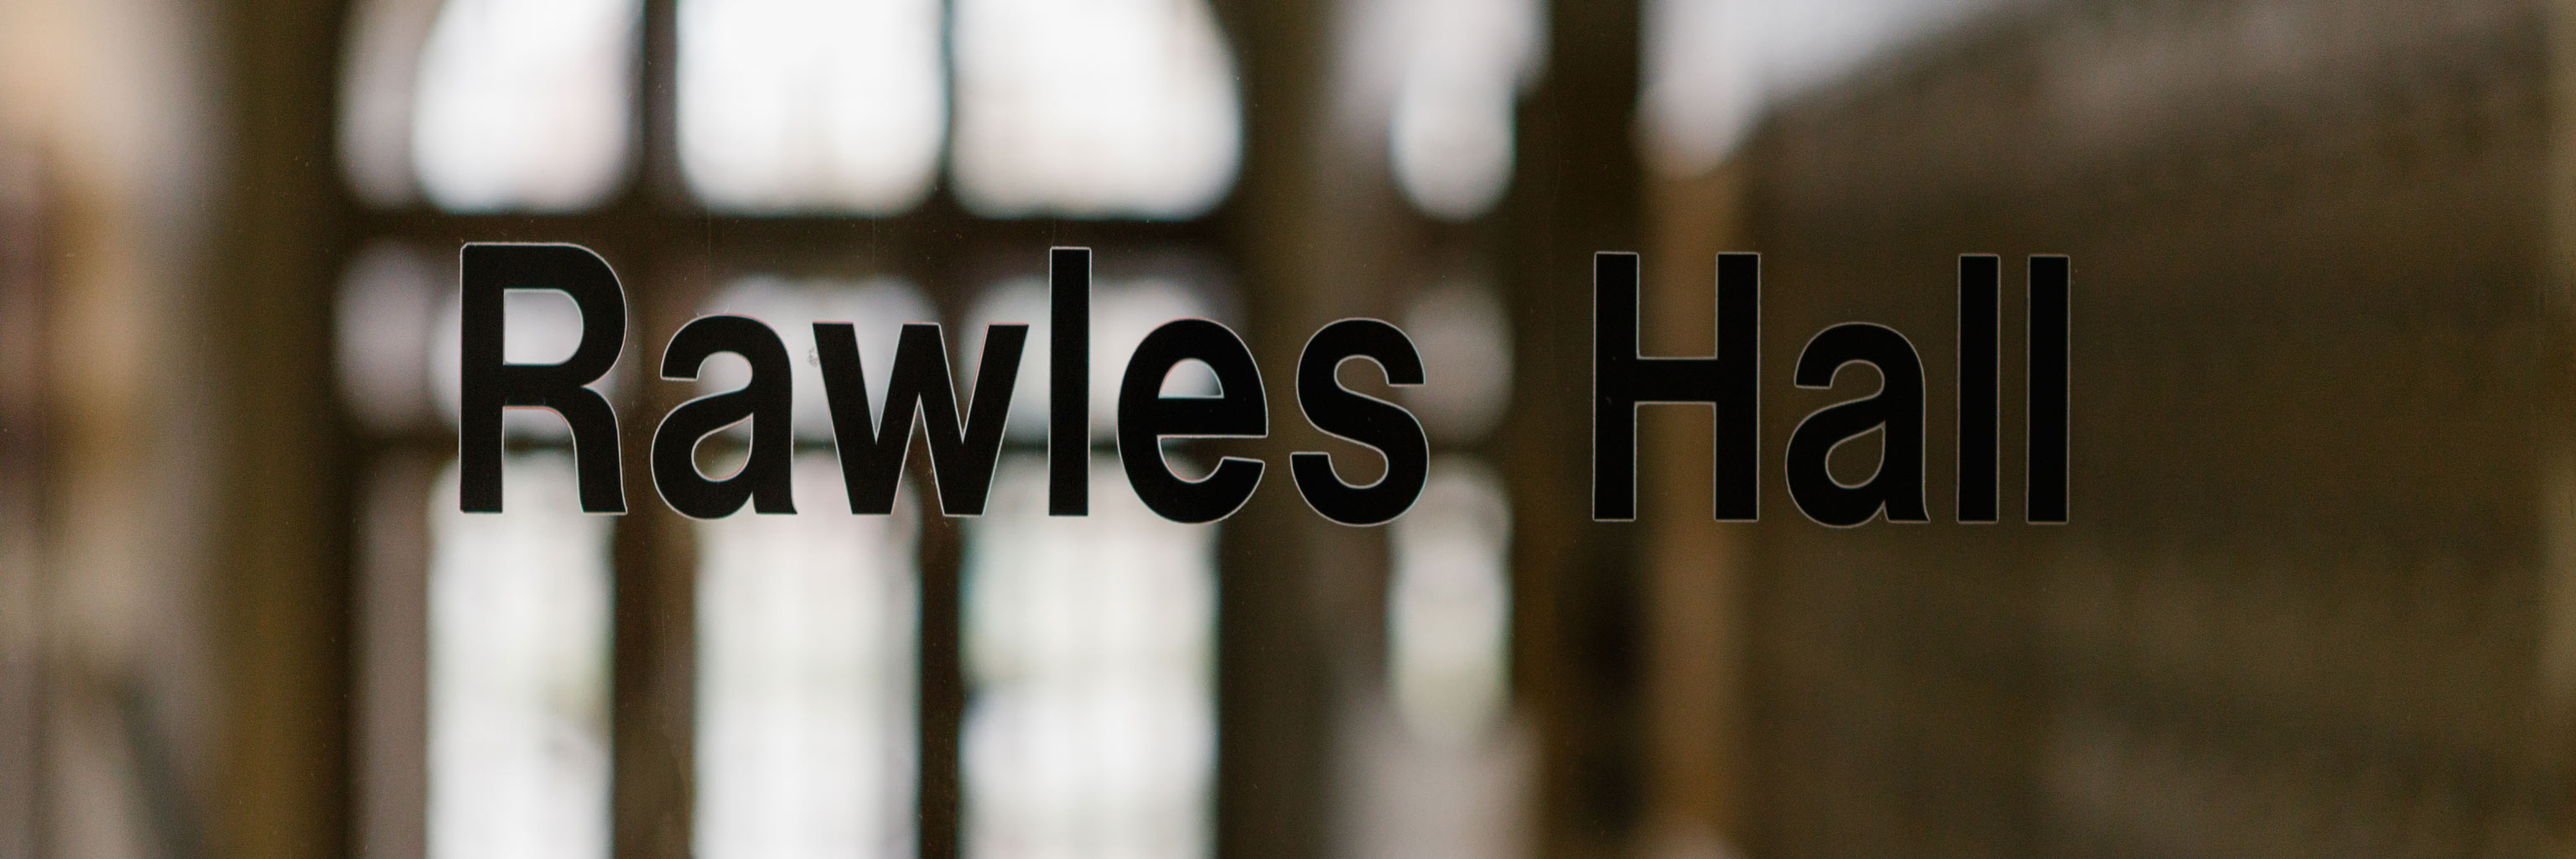 Rawles Hall title card